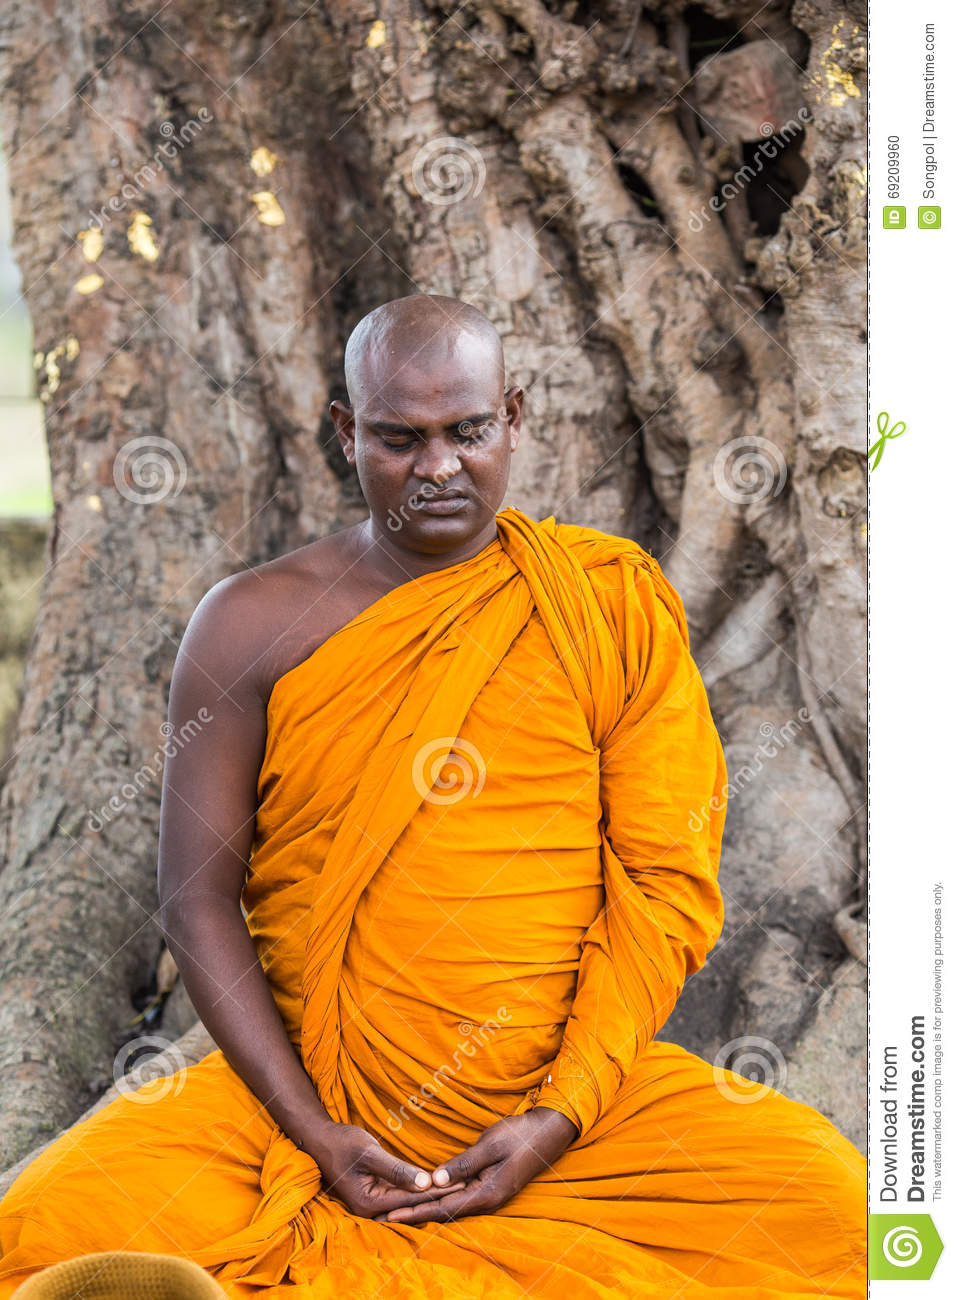 varney buddhist single women Status of women in buddhism discriminations discrimination against women is a feature common in all societies whether in africa, america, asia or europe, the prejudices and obstacles that women have had to encounter and surmount seem almost identical.